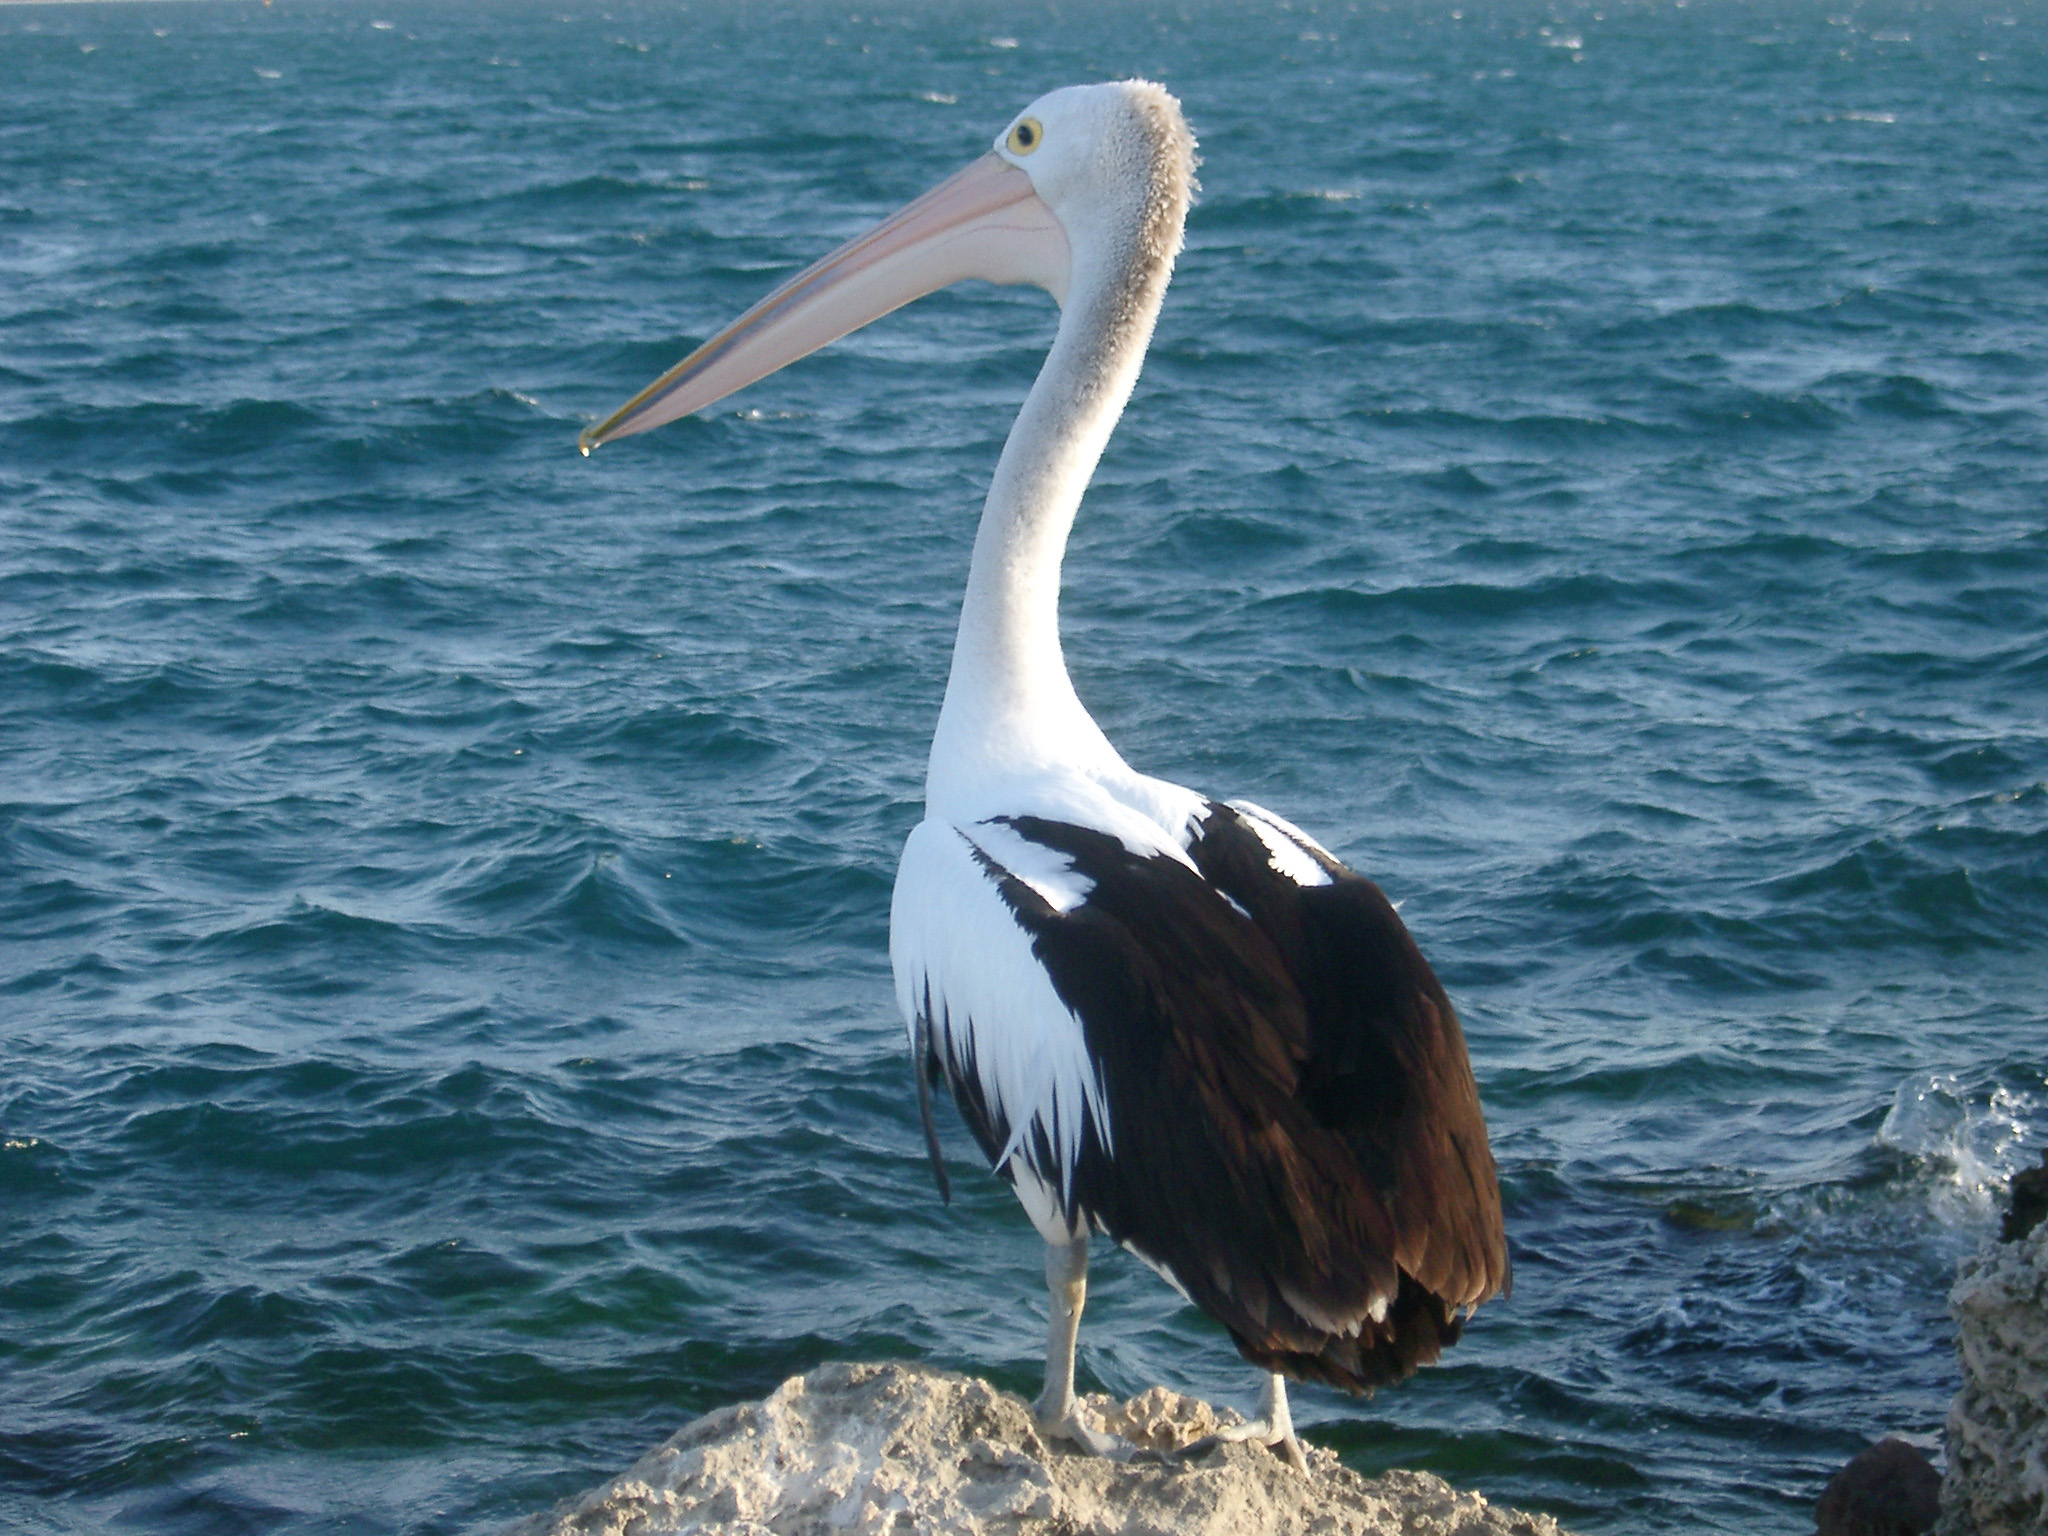 Close up Pelican Animal Standing on Sea Rock at West Australia on Blue Sea Water Background.